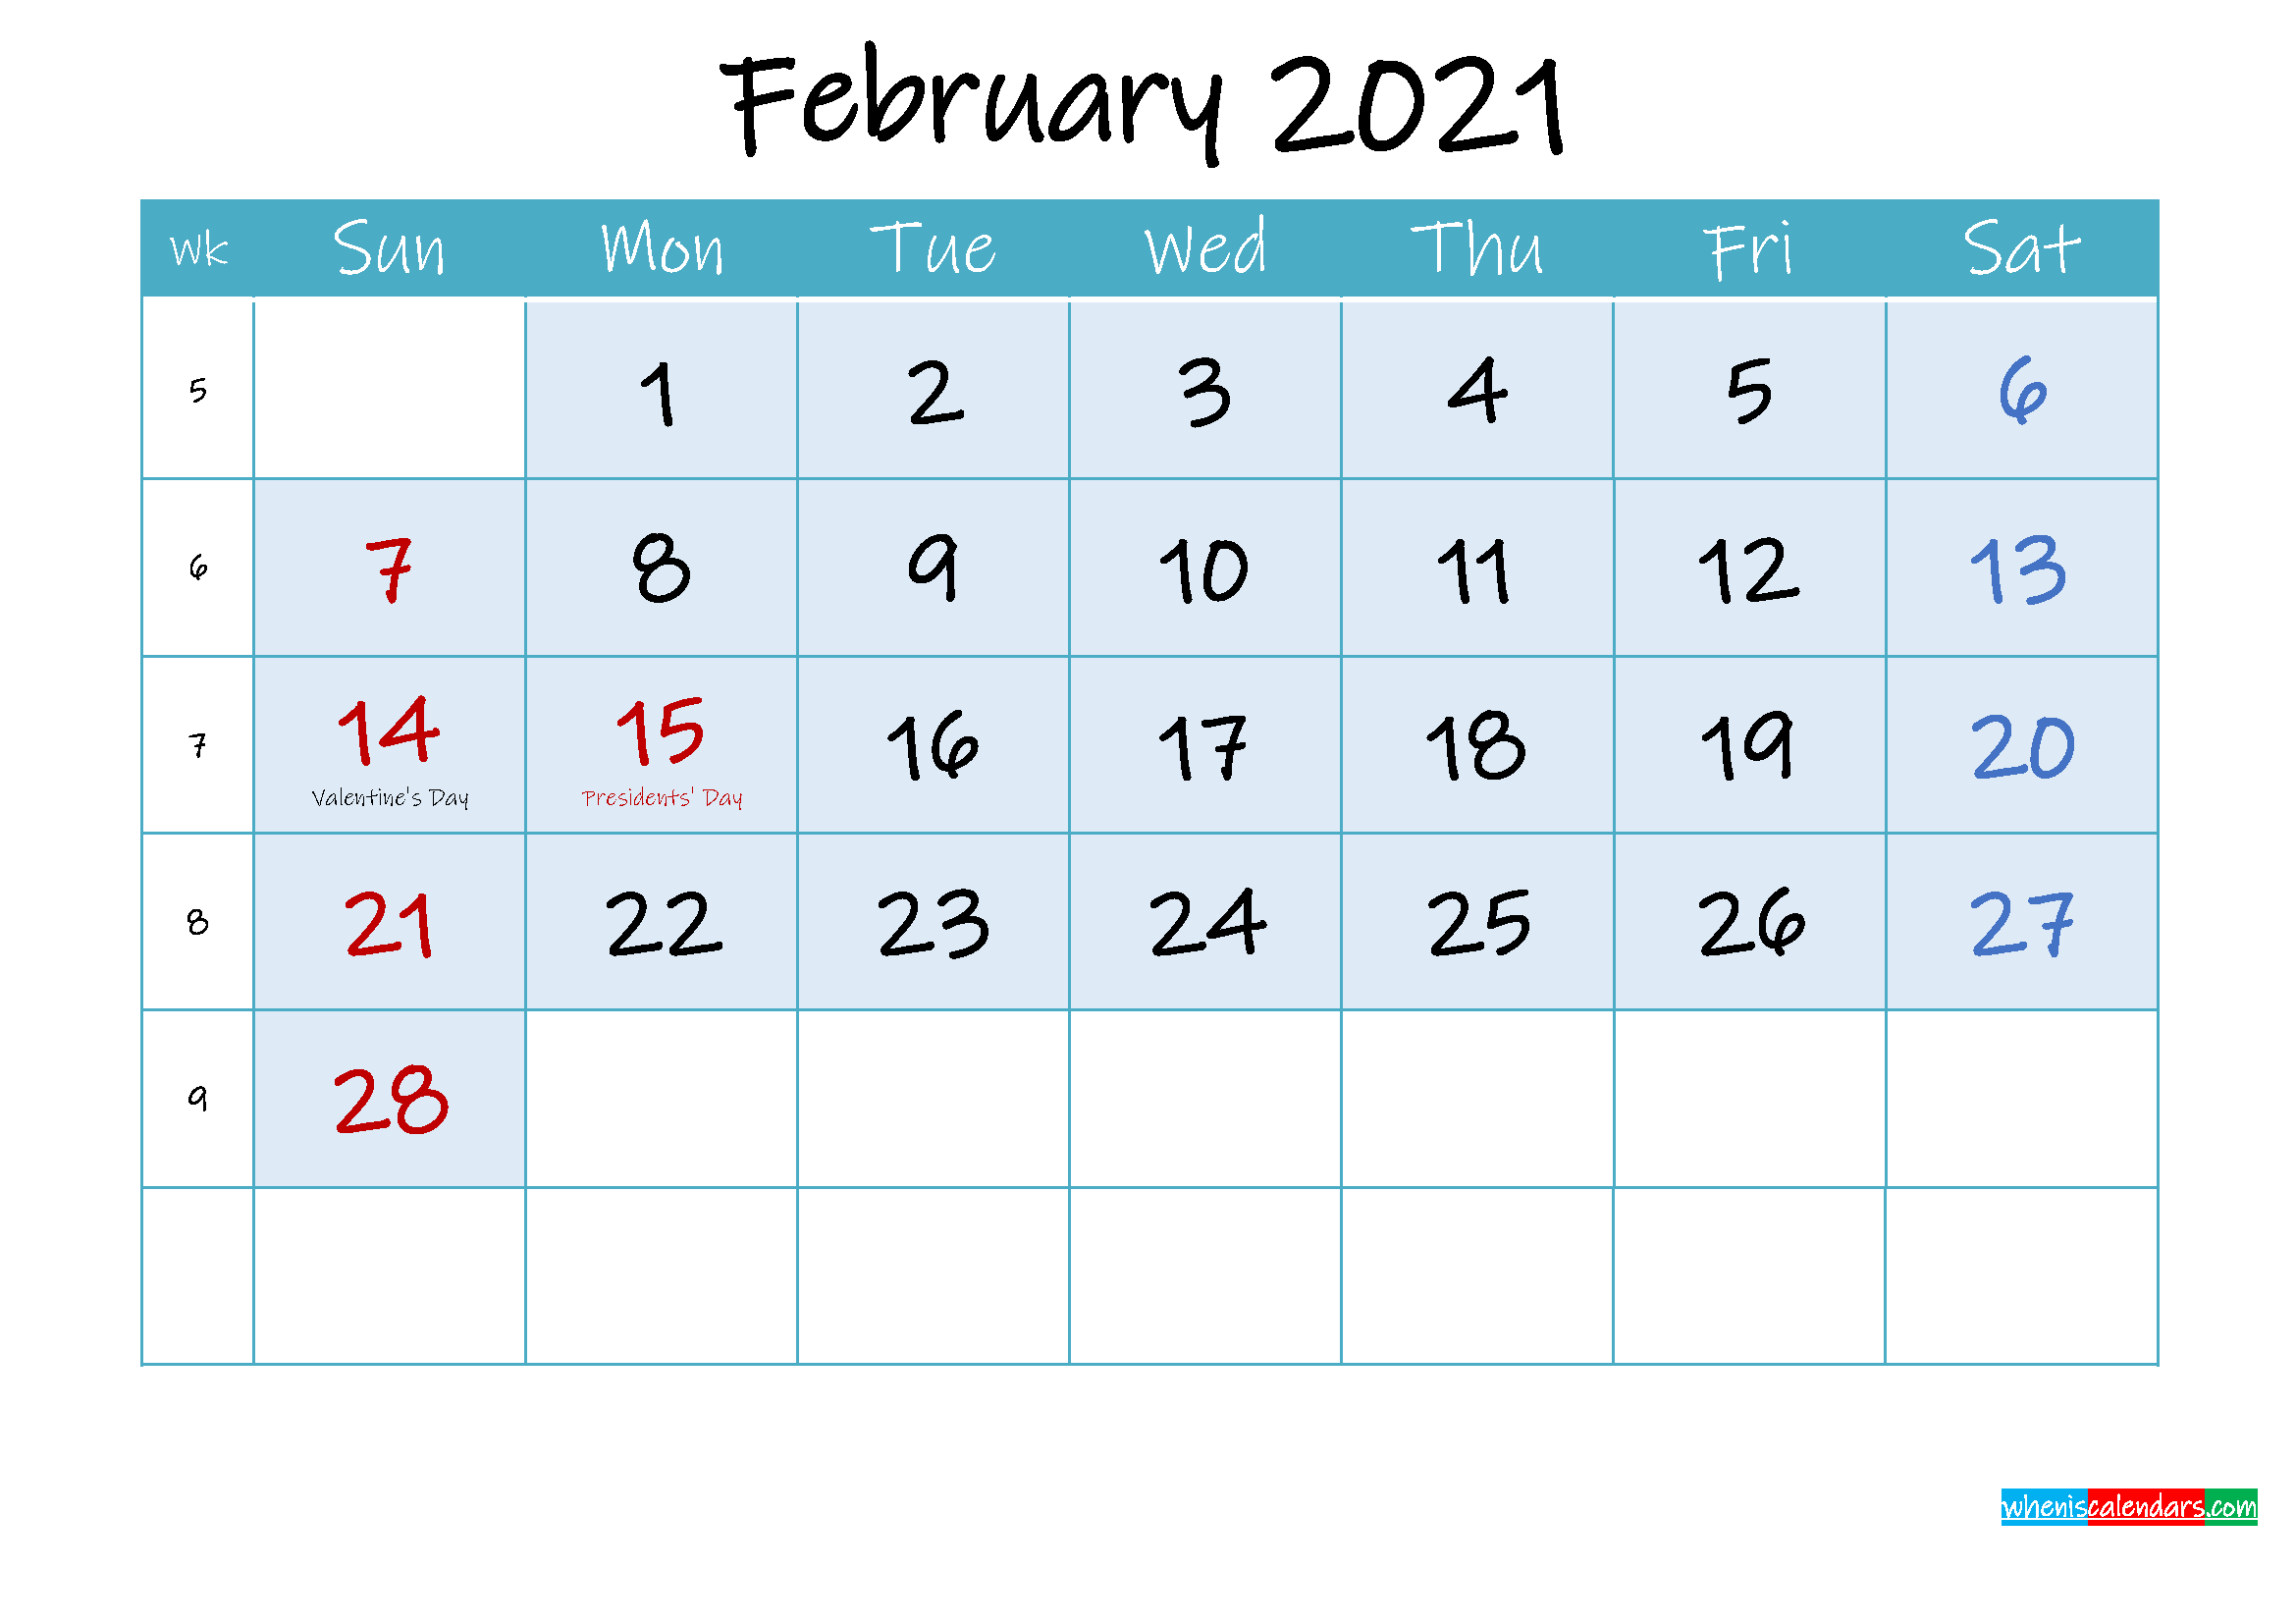 February 2021 Free Printable Calendar with Holidays